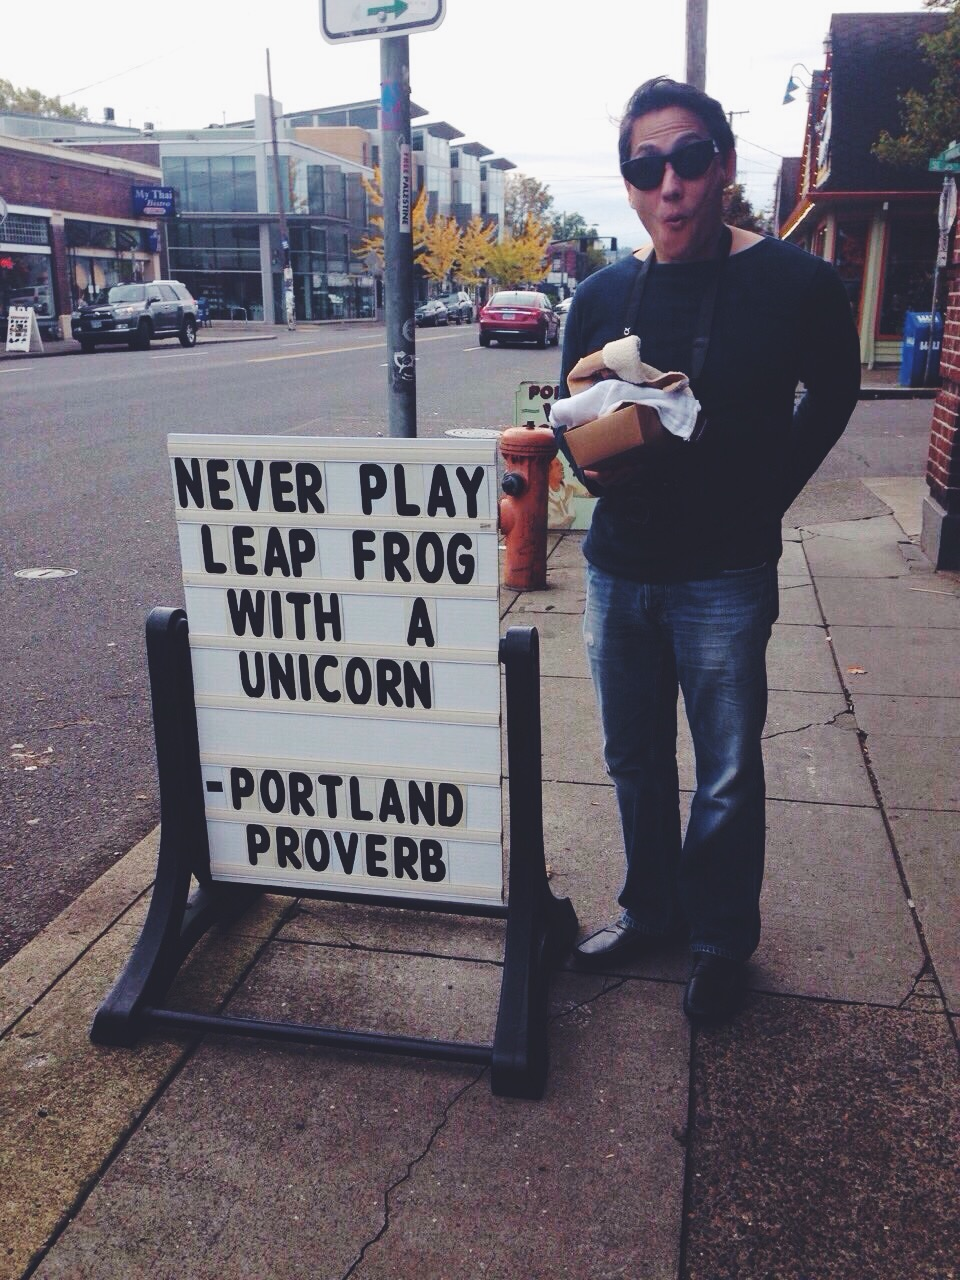 You stay weird PDX, this is why i love you.